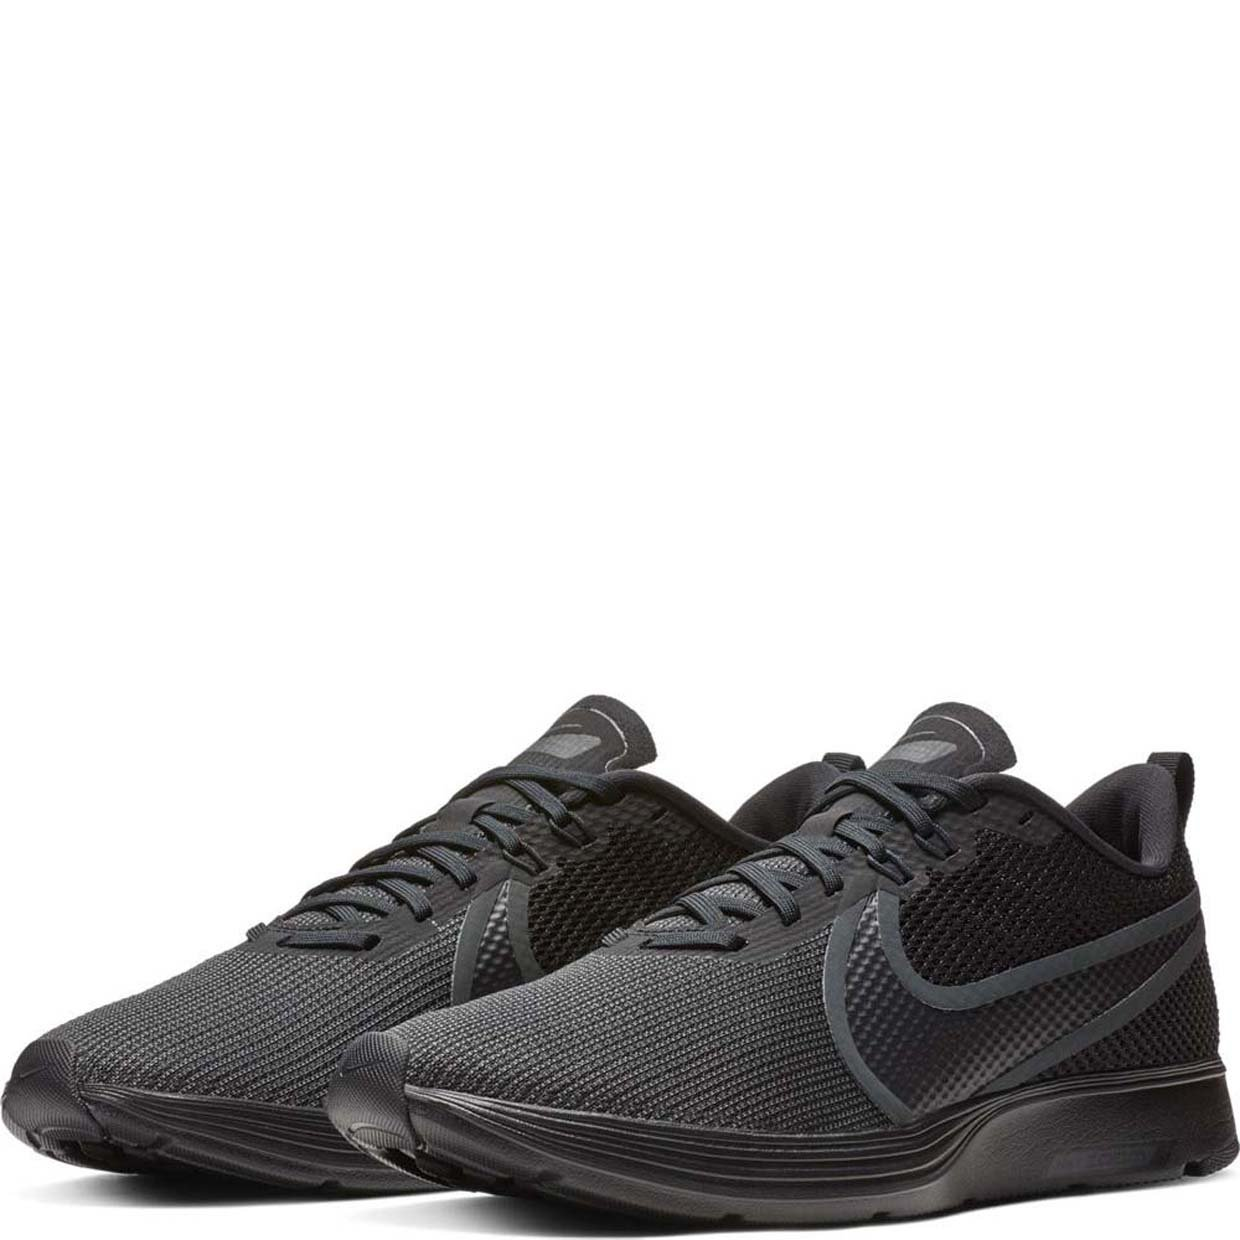 Кроссовки Nike Zoom Strike 2. Фото N3